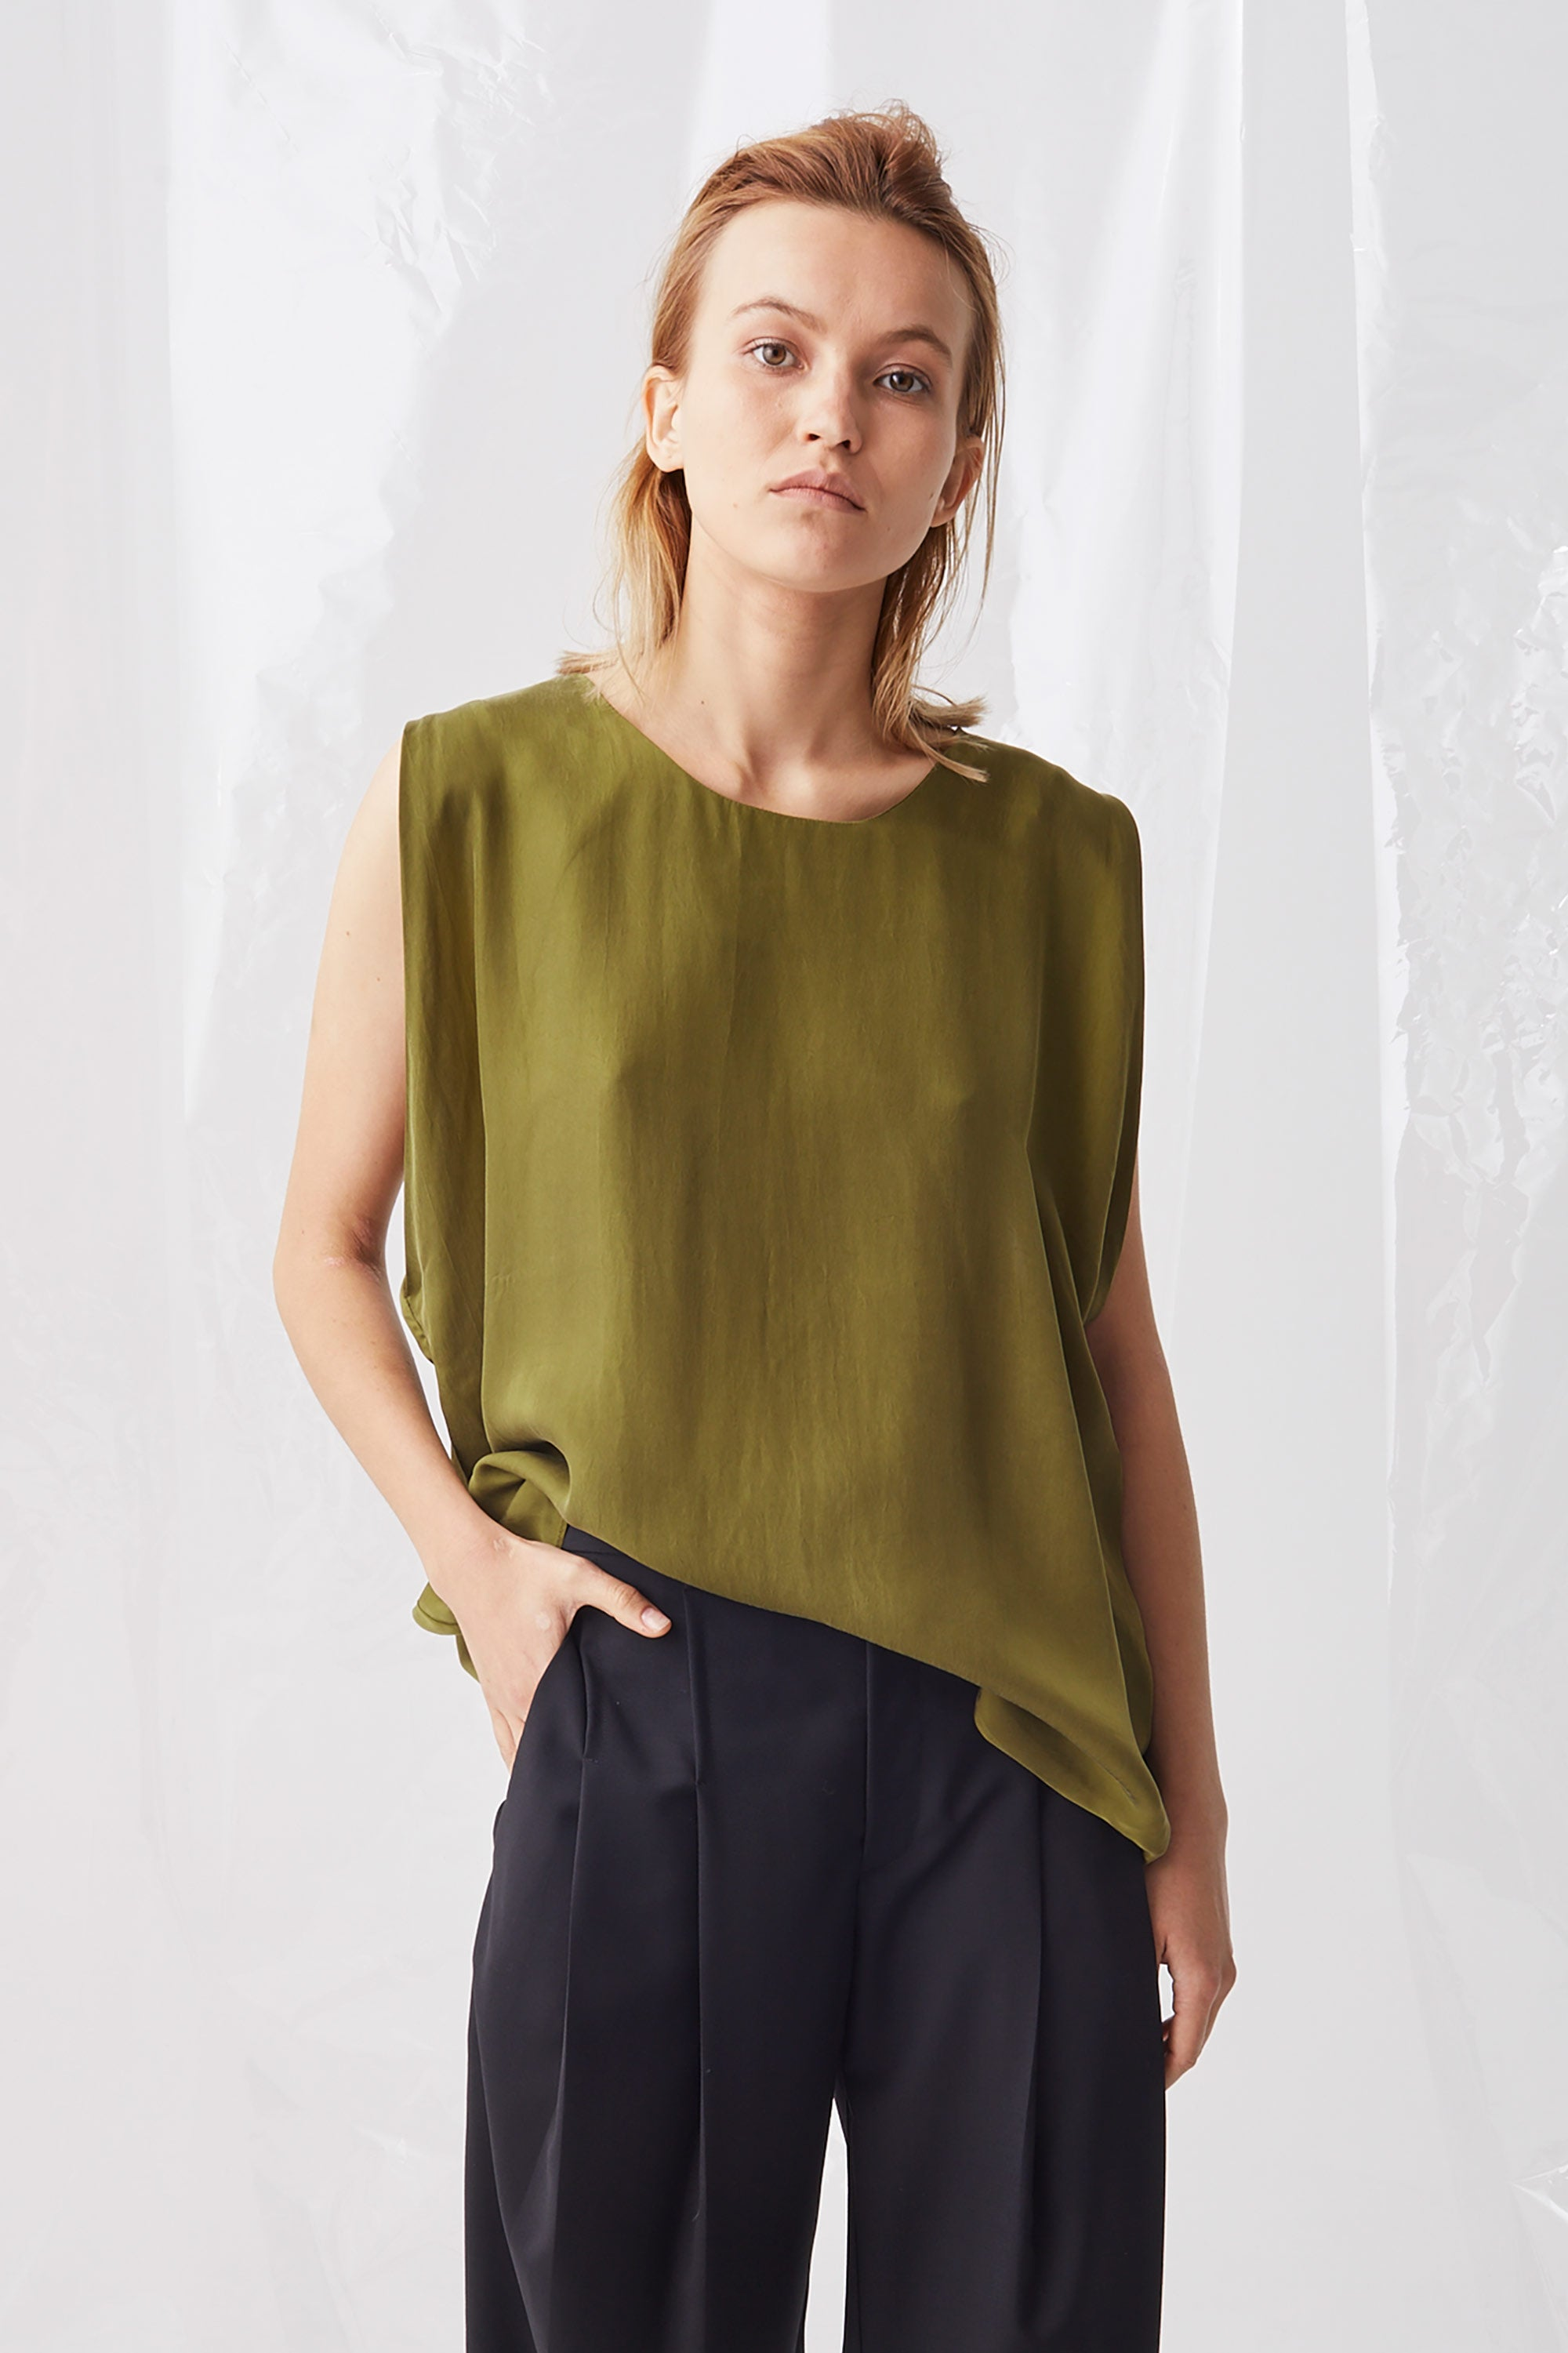 Ricochet NZ Fashion Designer Clothing Boutique SS18 Yukata Top Pea Green Cupro Two Ways Made in NZ